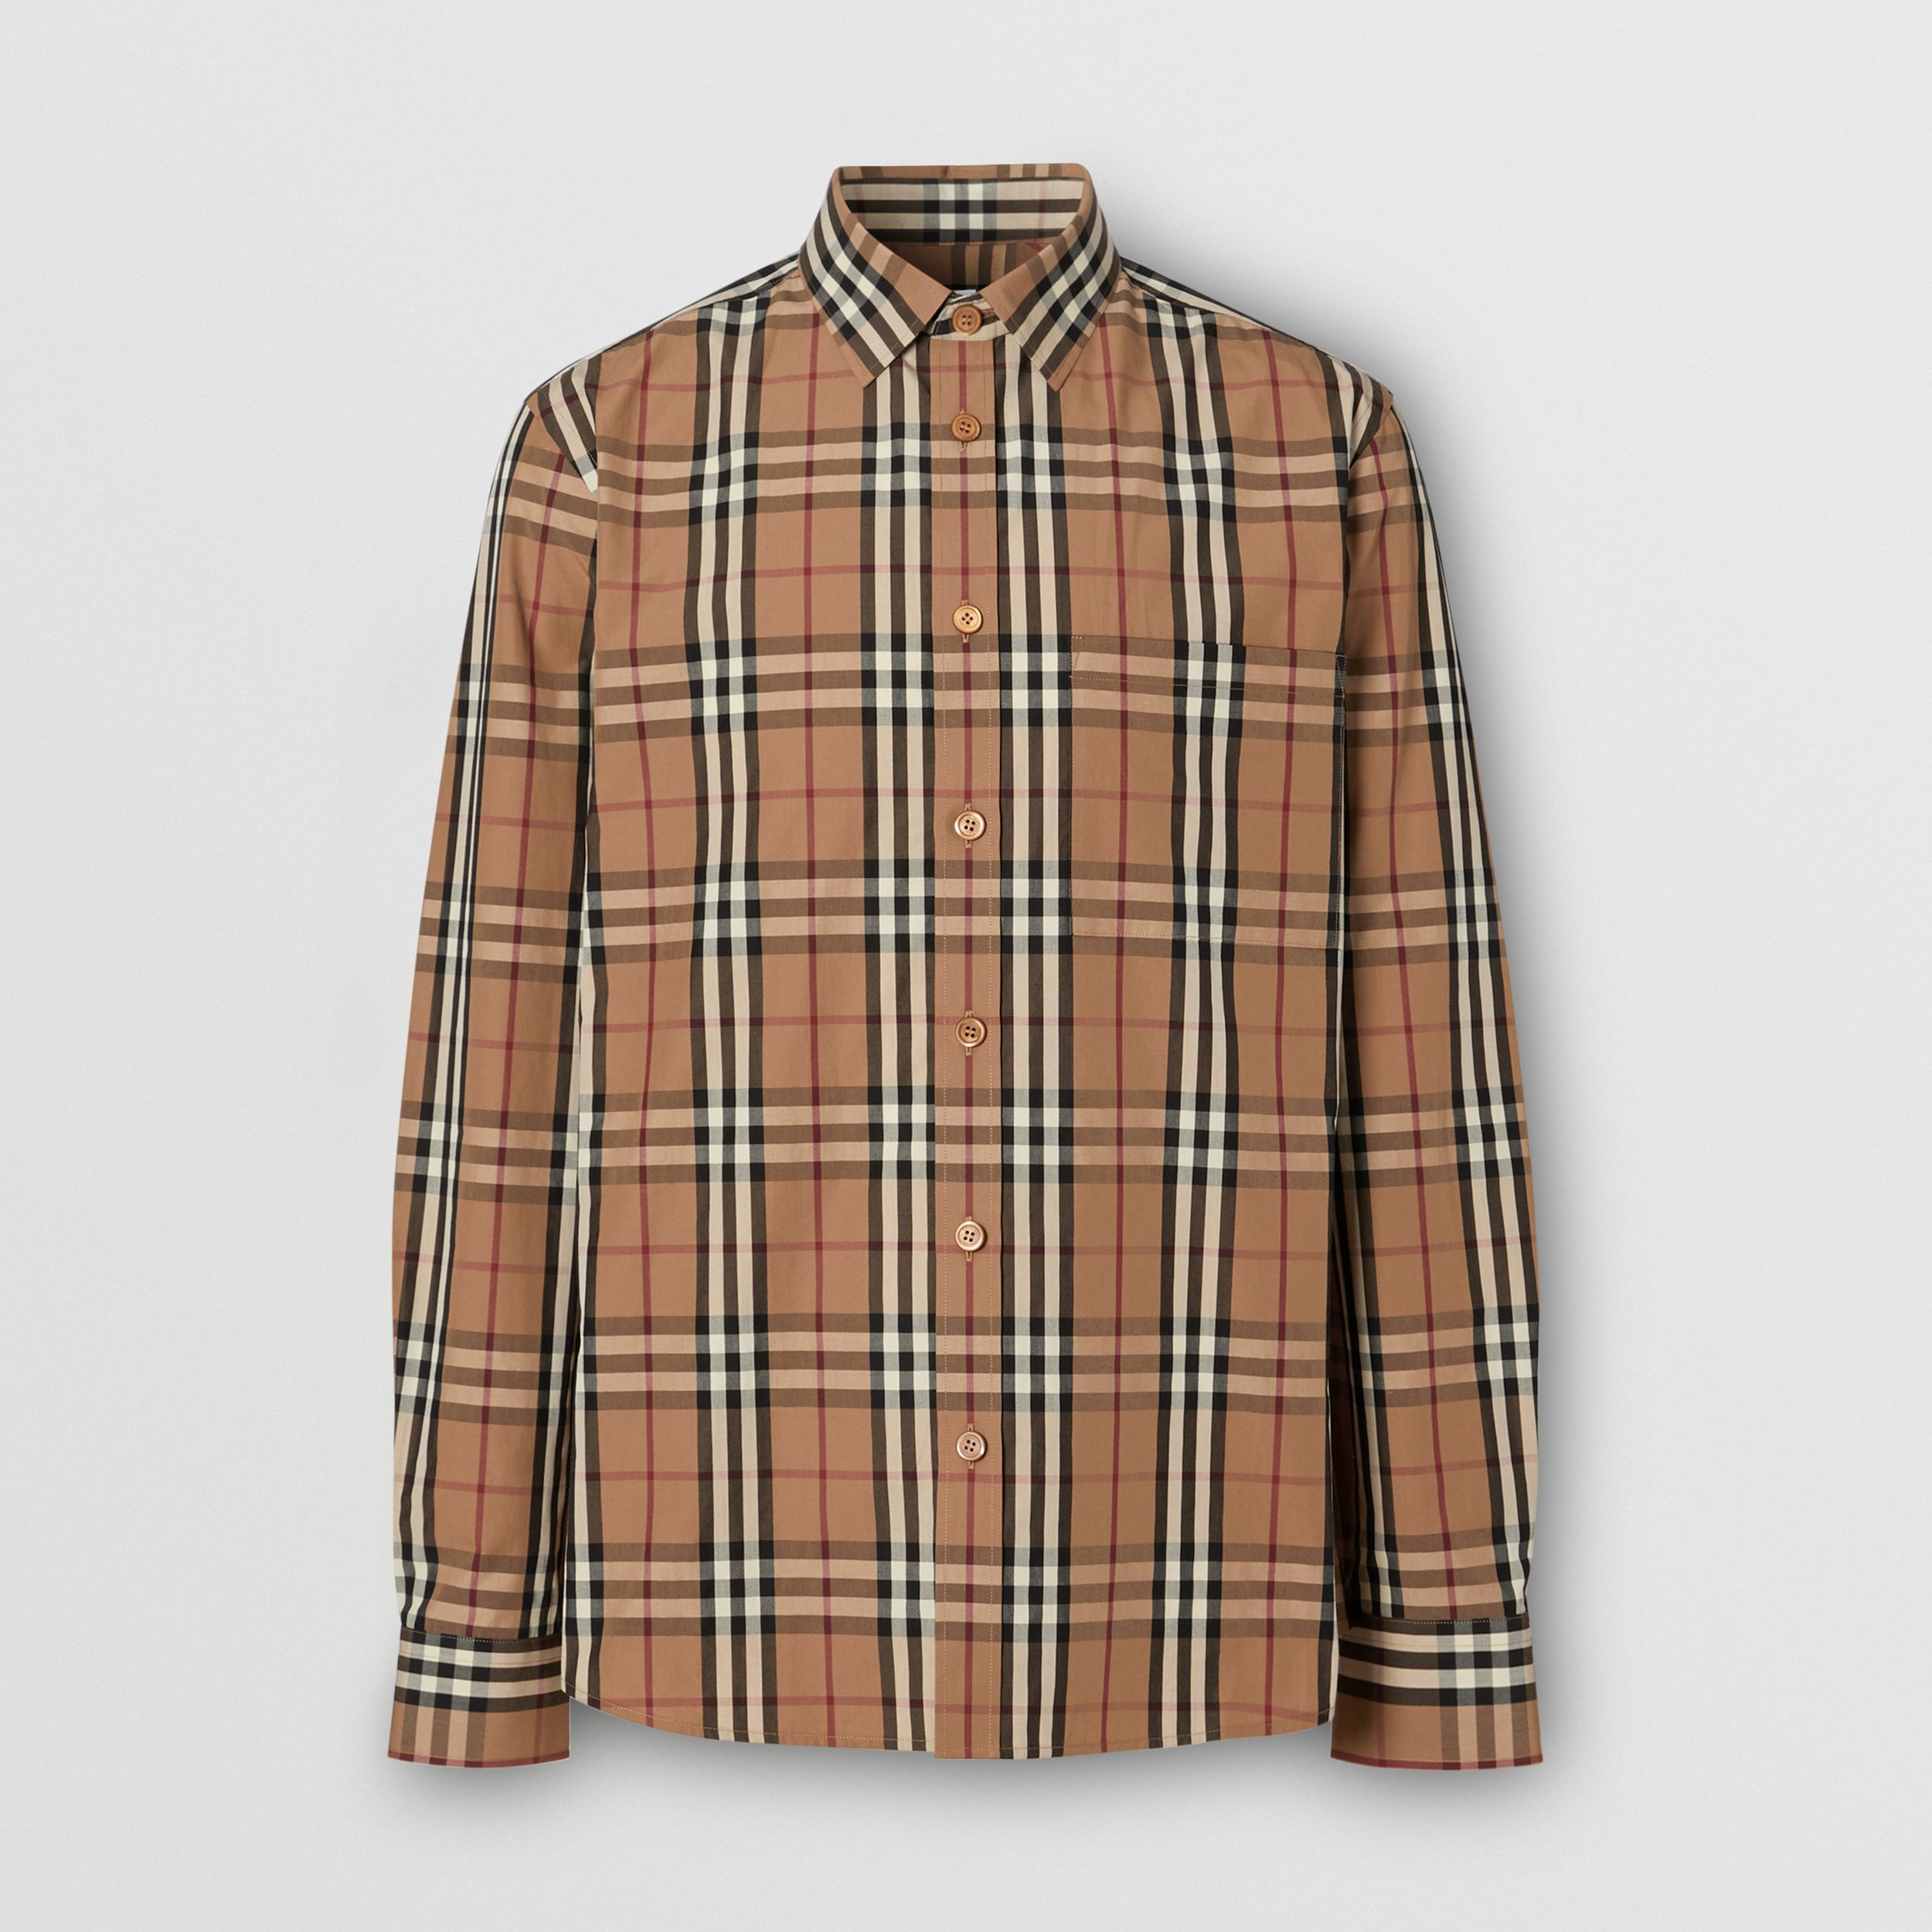 Vintage Check Cotton Poplin Shirt in Birch Brown | Burberry - 4